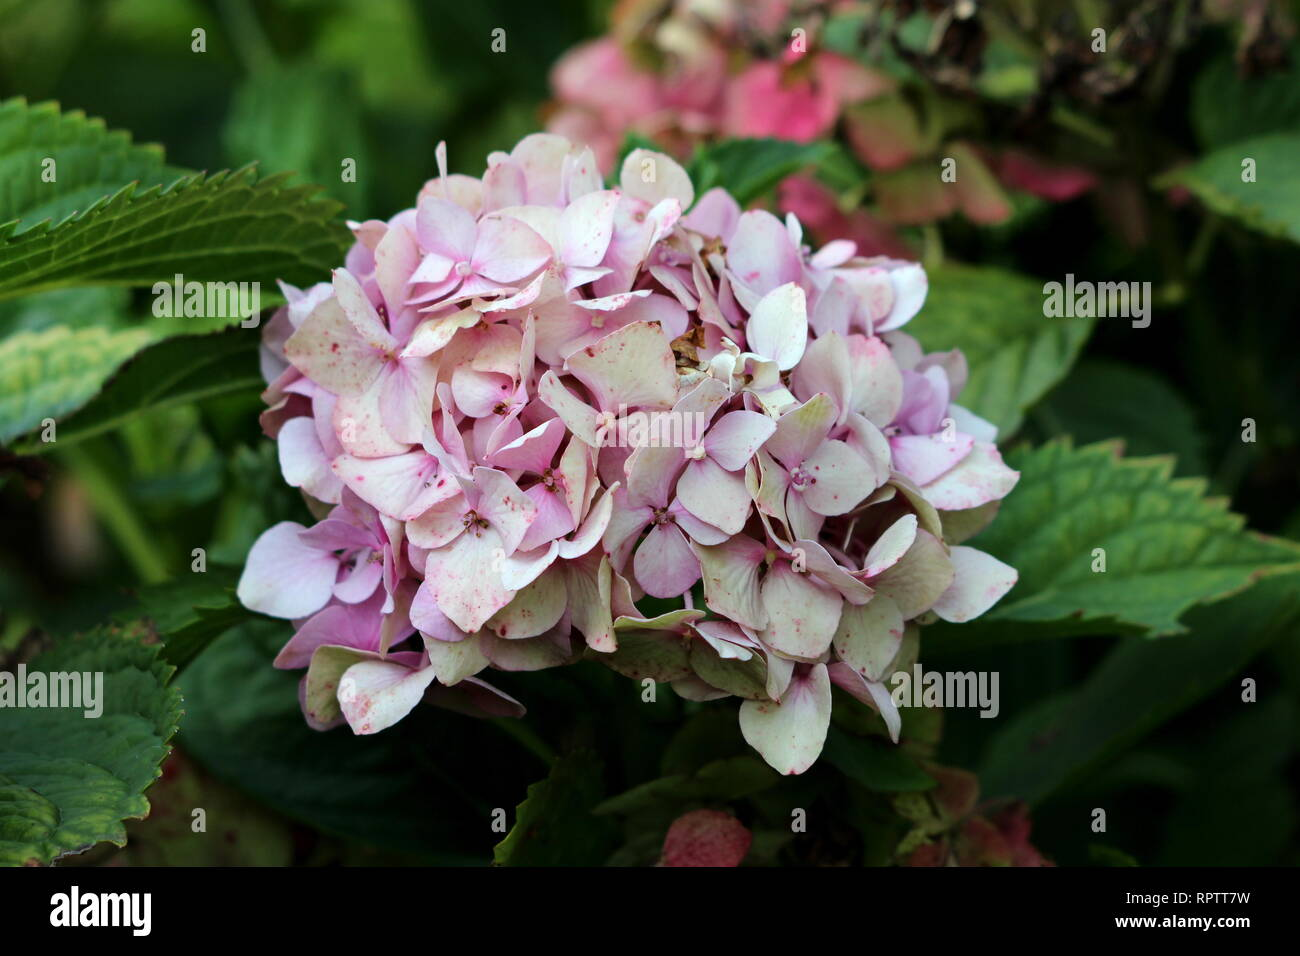 Hydrangea or Hortensia garden shrub with multiple small dark pink flowers with spots and pointy petals surrounded with thick green leaves - Stock Image